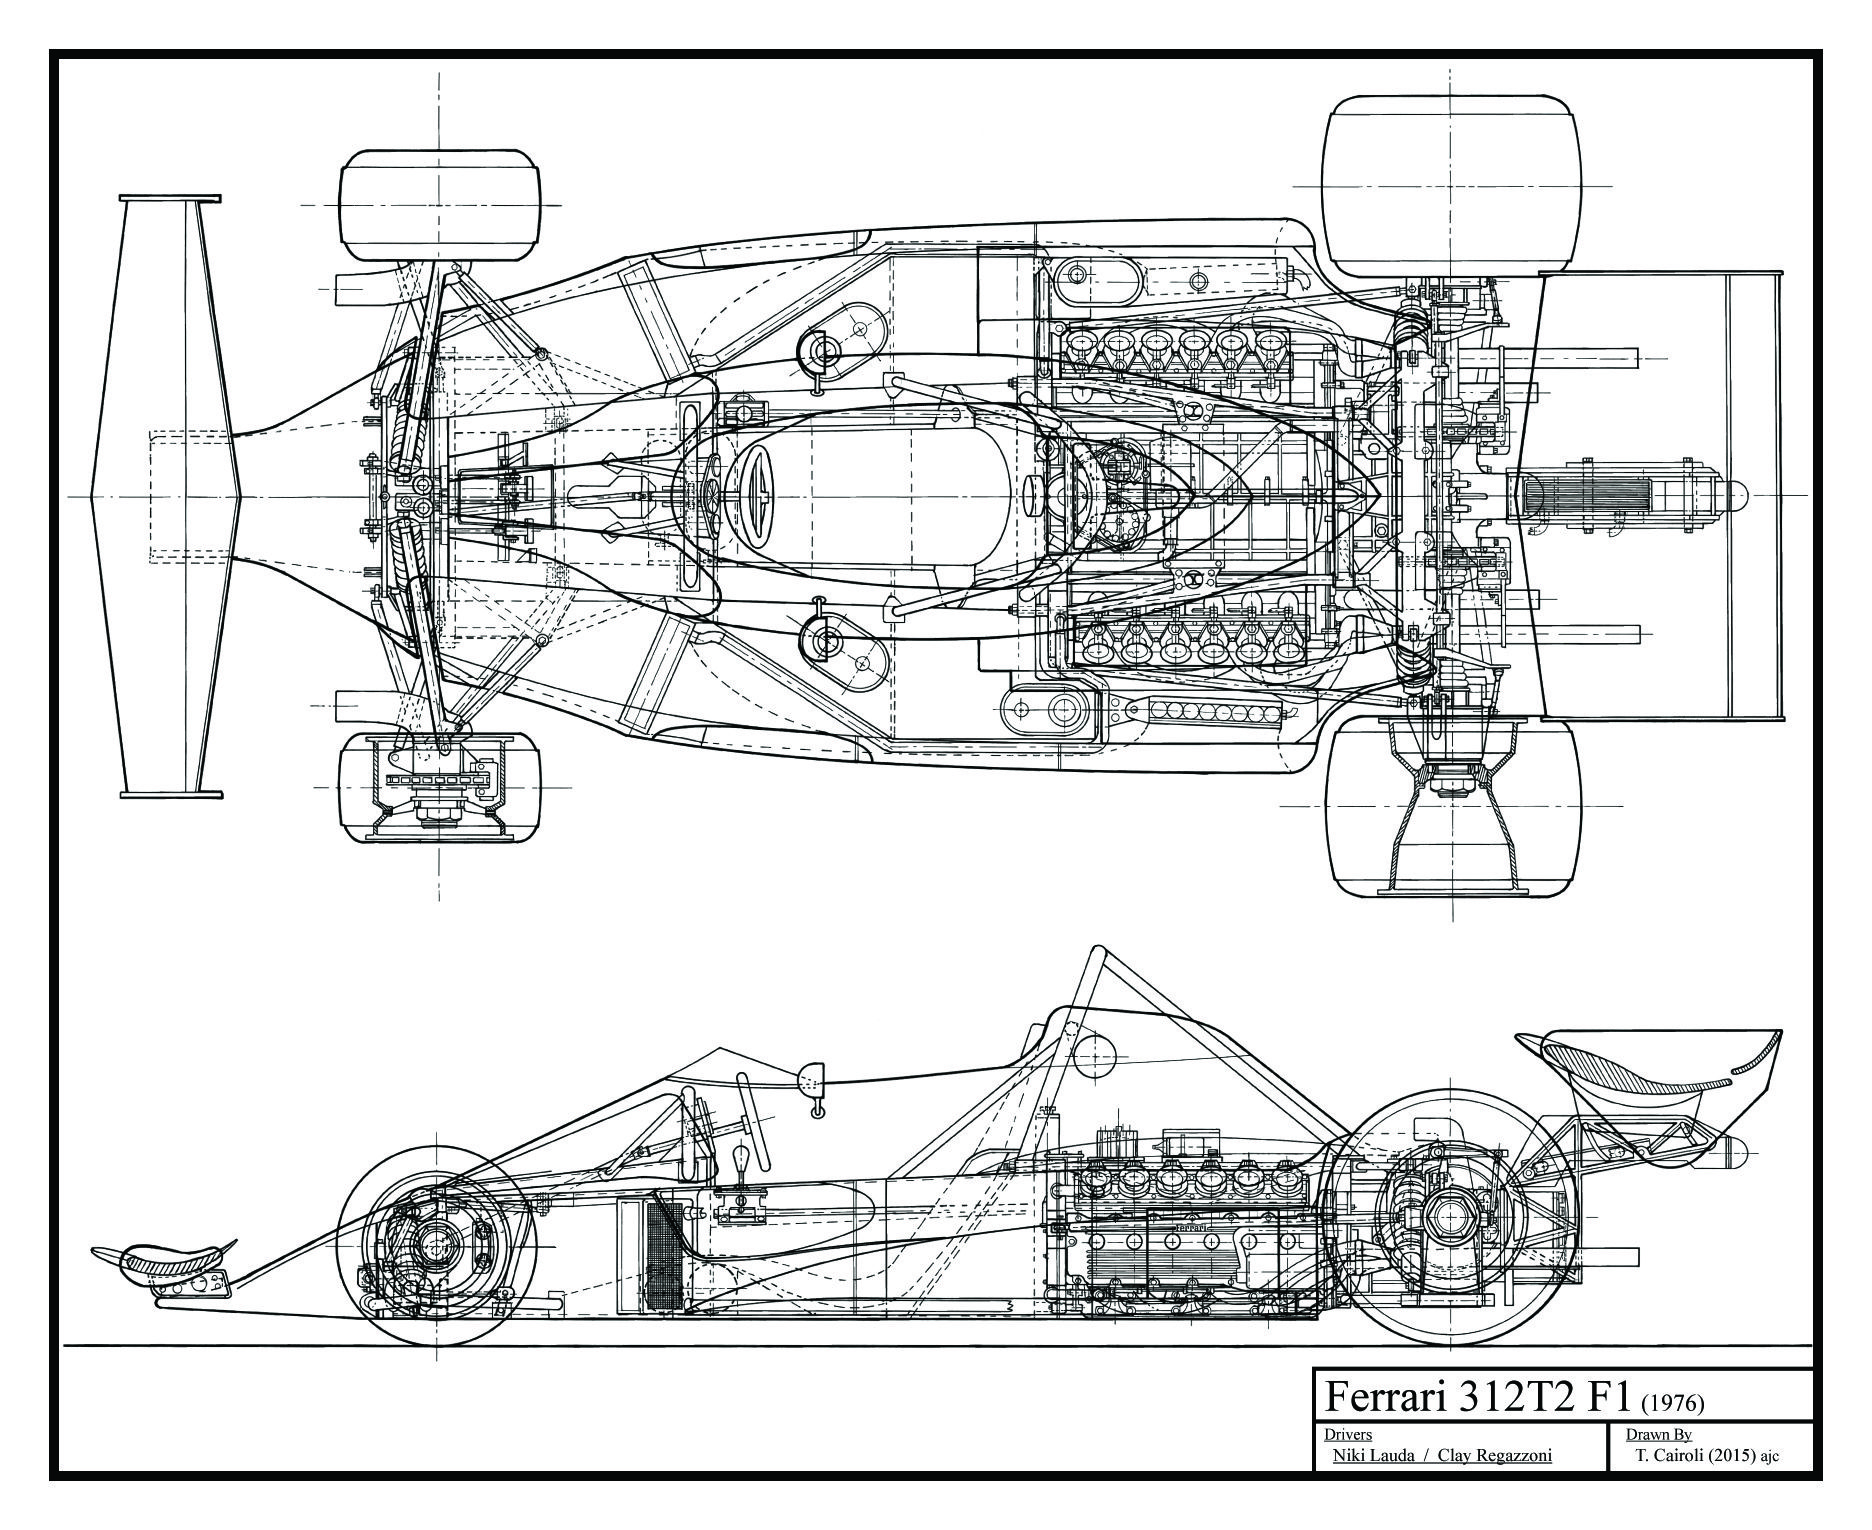 Formula 1 Motor Diagram Auto Electrical Wiring Blueprint Engine Ferrari York Rooftop Ac